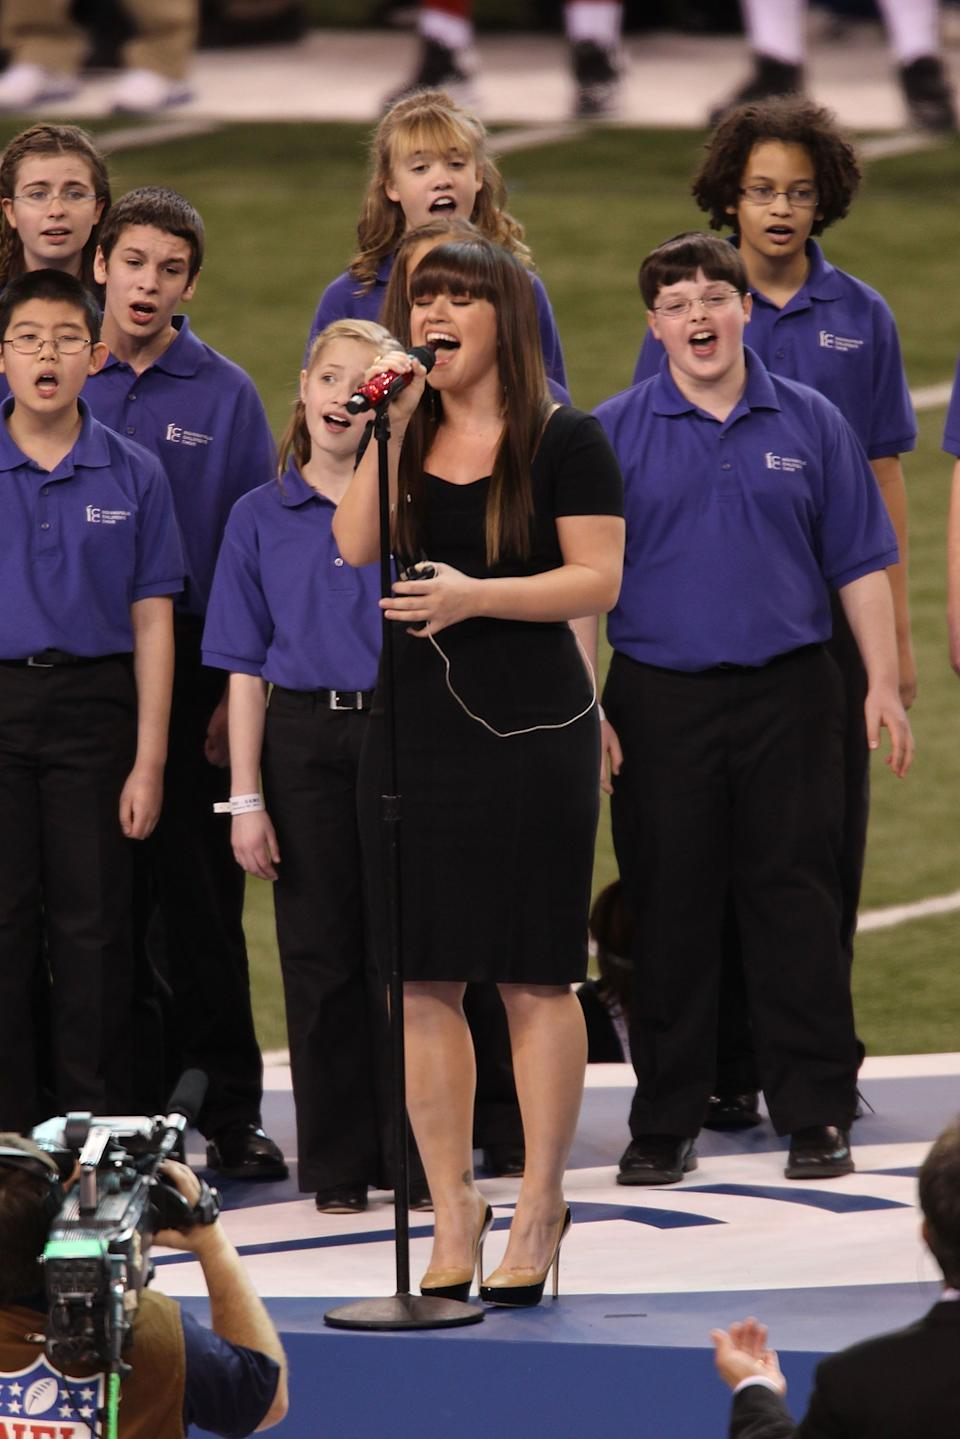 Kelly Clarkson performs the National Anthem during the Bridgestone Super Bowl XLVI Pregame Show at Lucas Oil Stadium on February 5, 2012 in Indianapolis, Indiana.